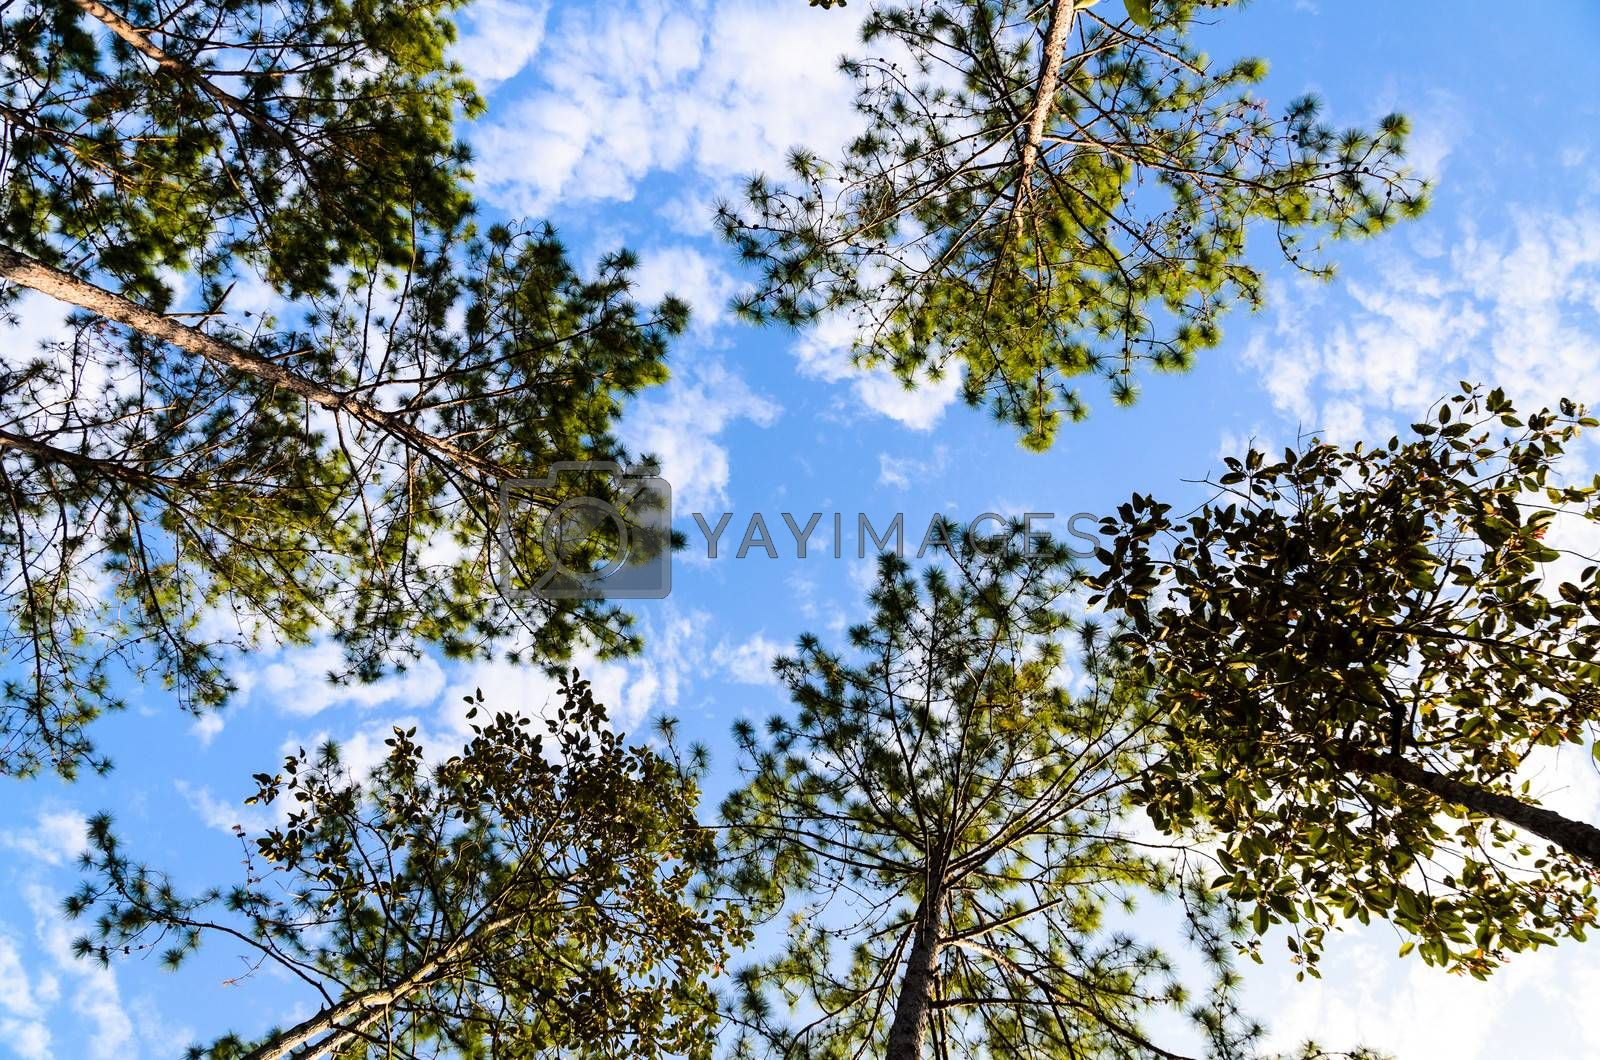 Royalty free image of Pine Forest under Blue Sky and Cloud in National Park by finallast